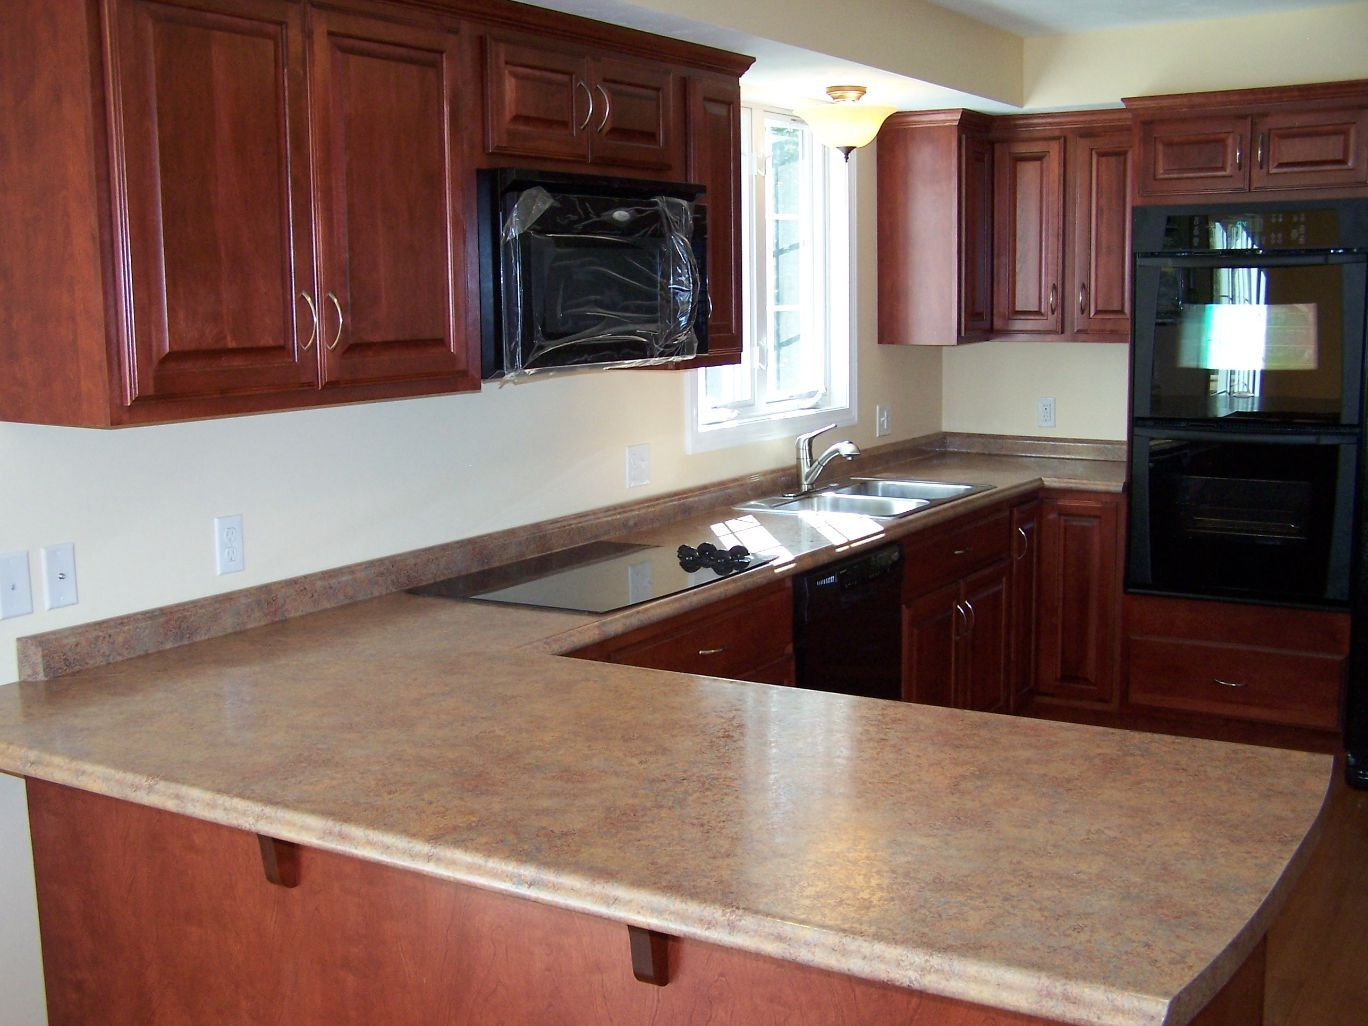 Oxford Kitchen Chery Cabinets High Def Counters (1368×1026) | New  Kitchen | Pinterest | How To Remove, Cabinets And Kitchen Cabinets